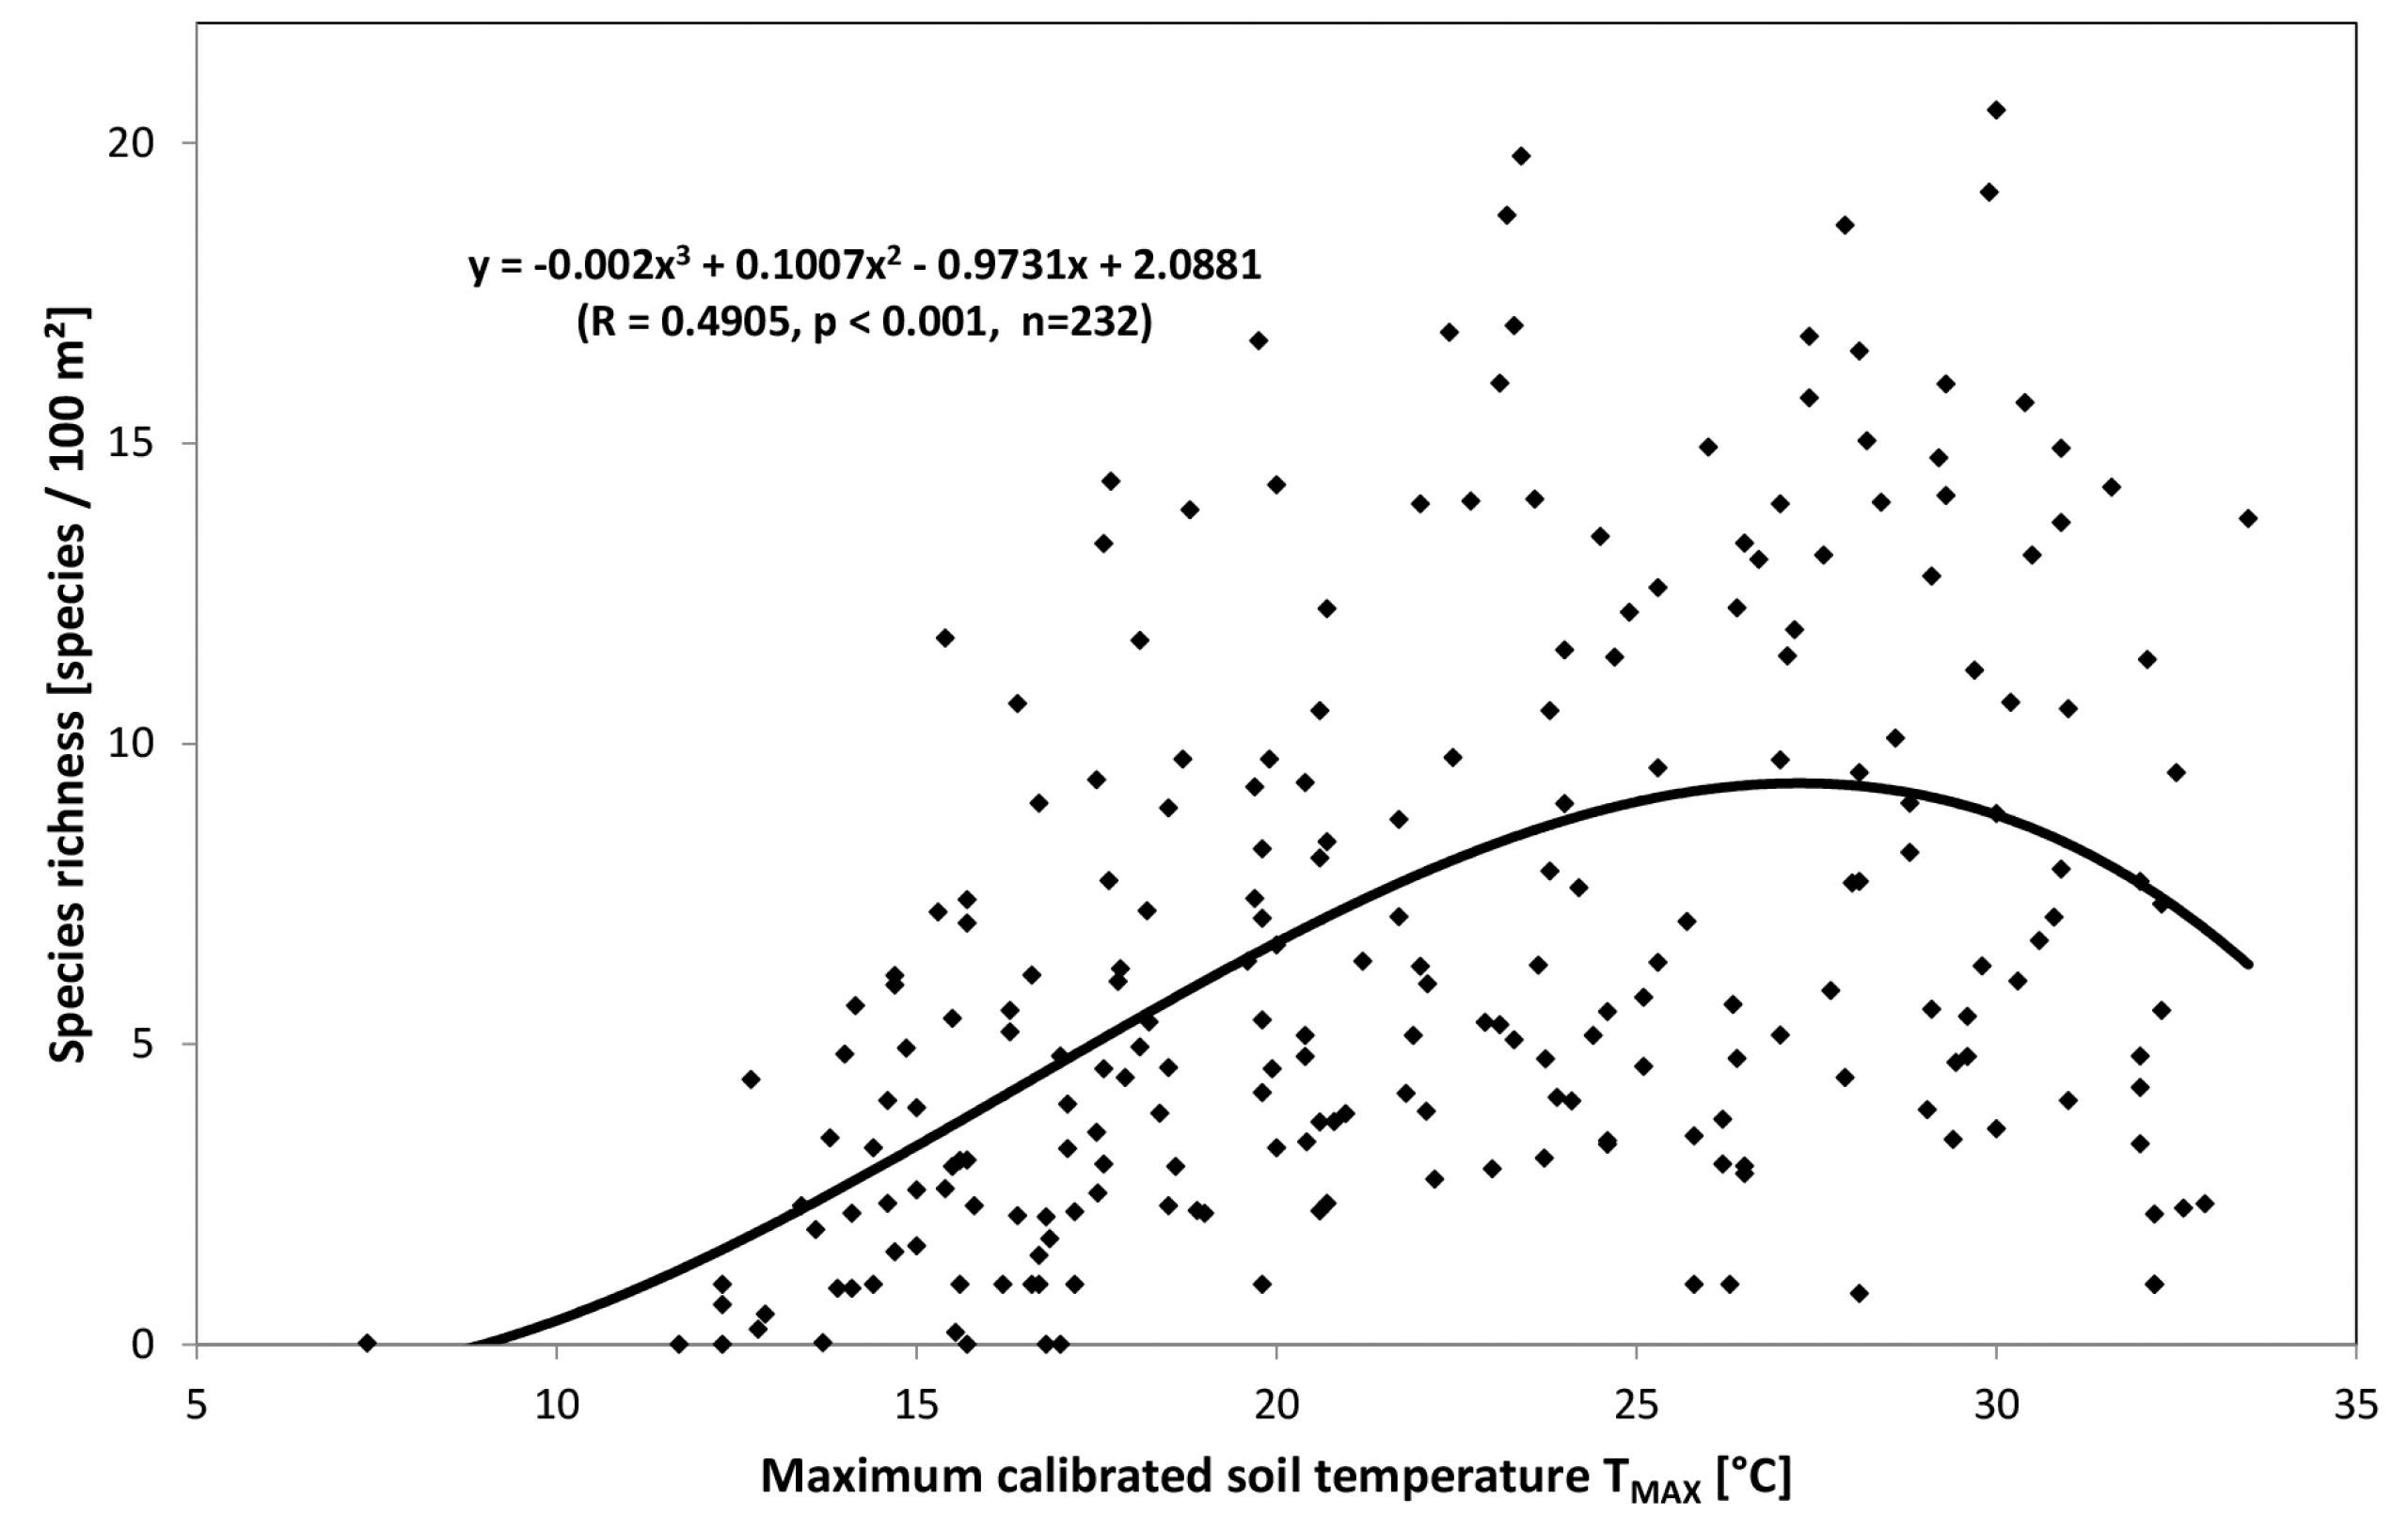 Dependency of species richness from maximum calibrated soil temperature